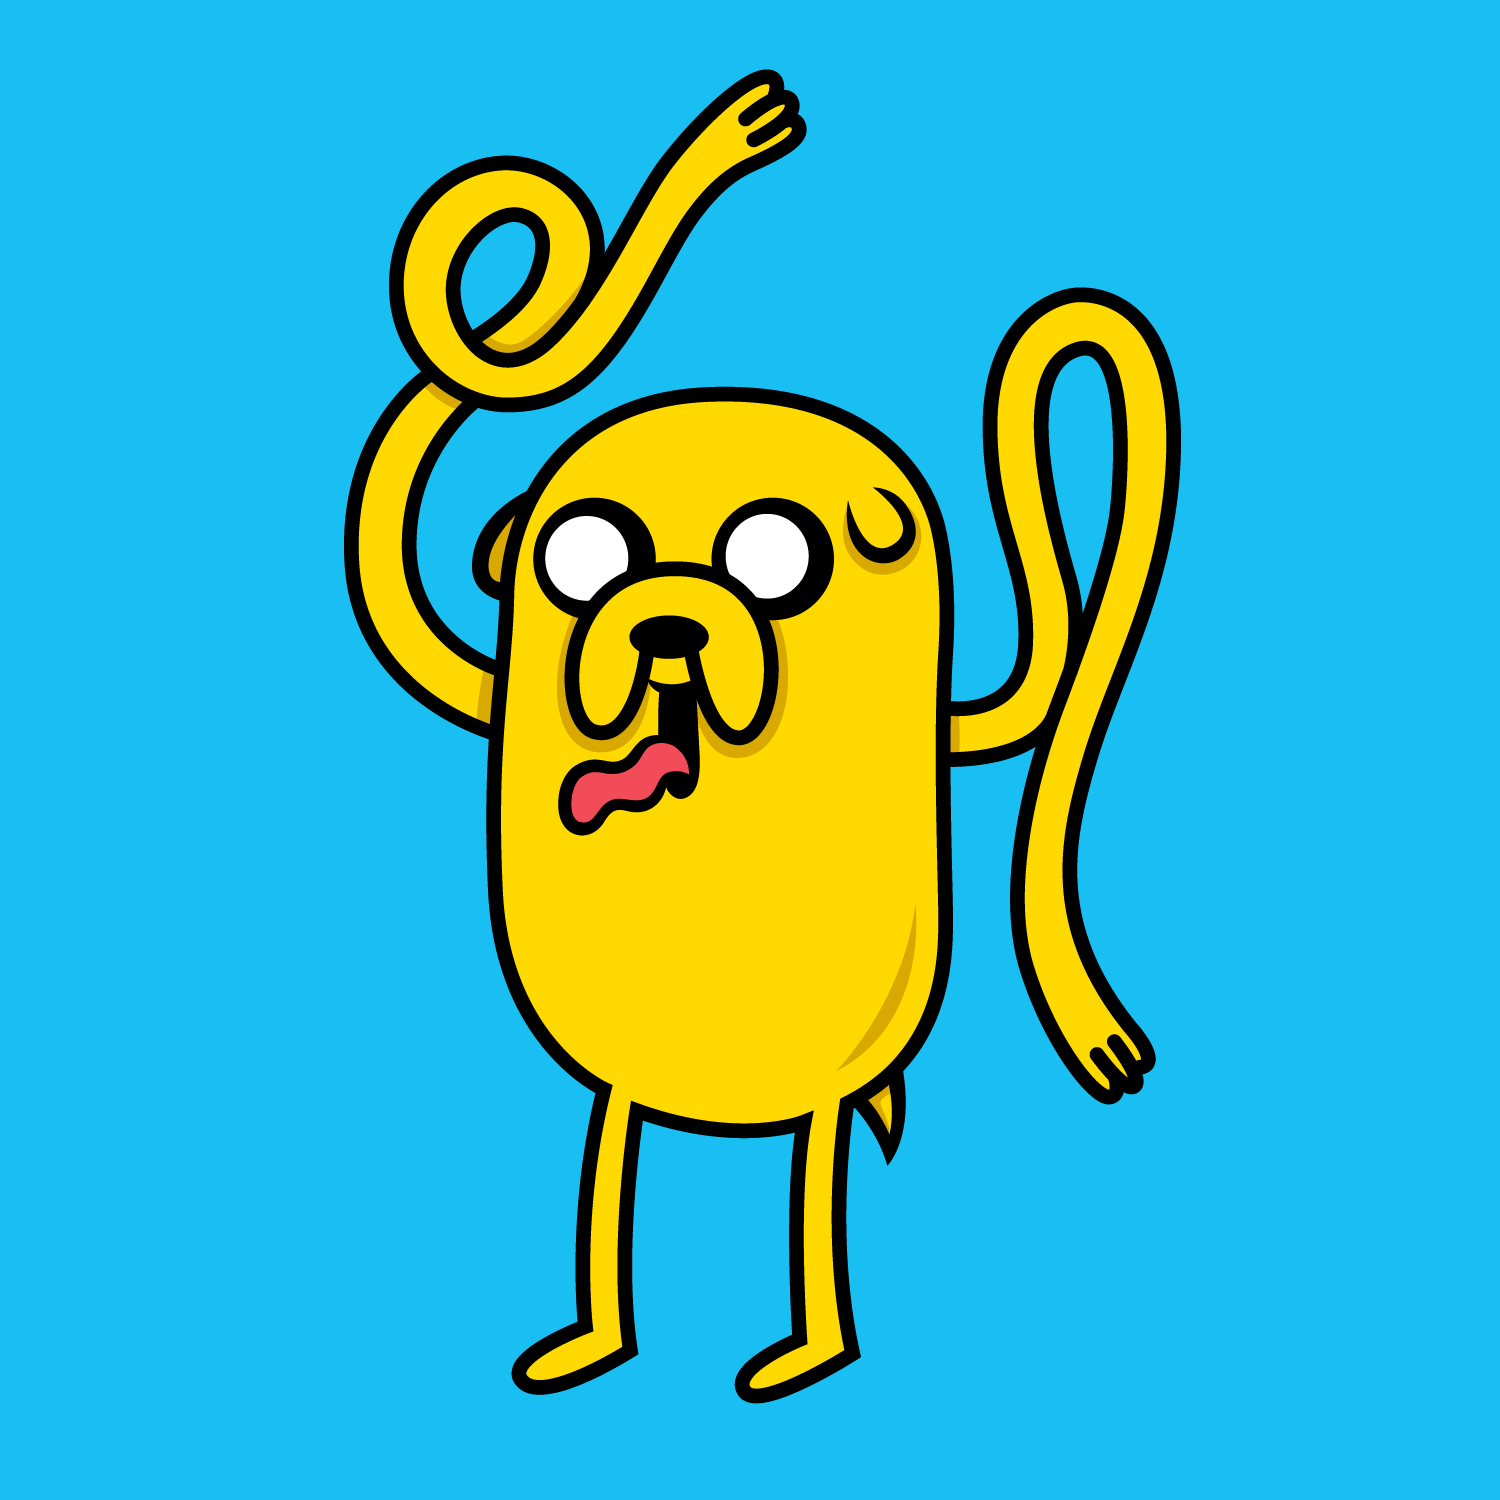 Jake the dog final.jpg